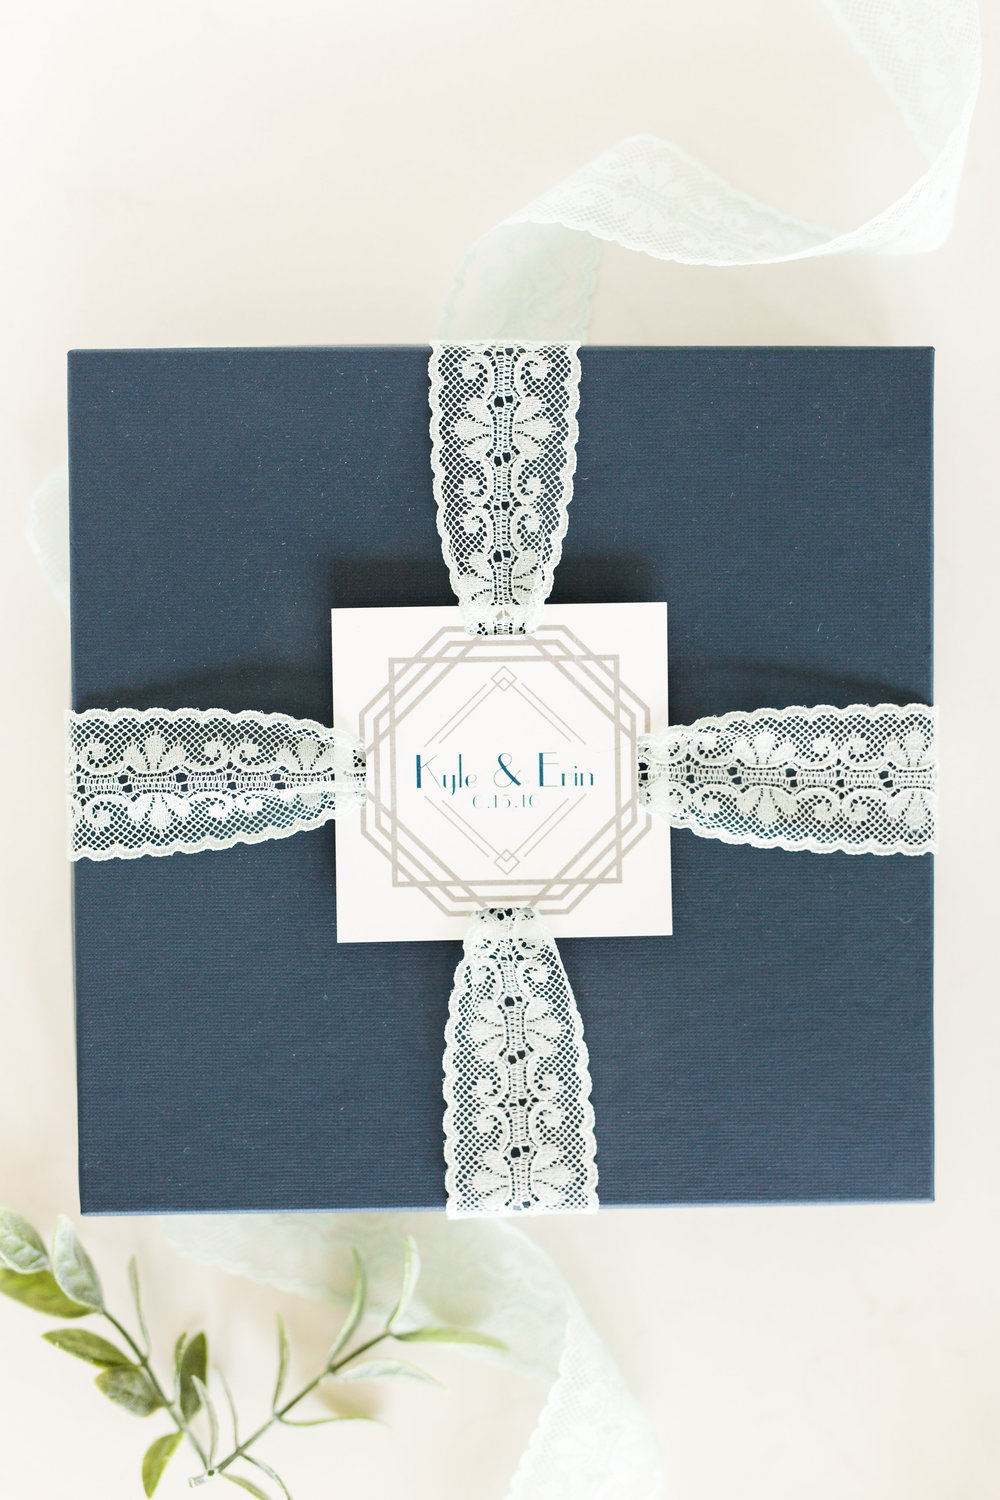 Kyle and Erin Wedding-Invitations-0001.jpg